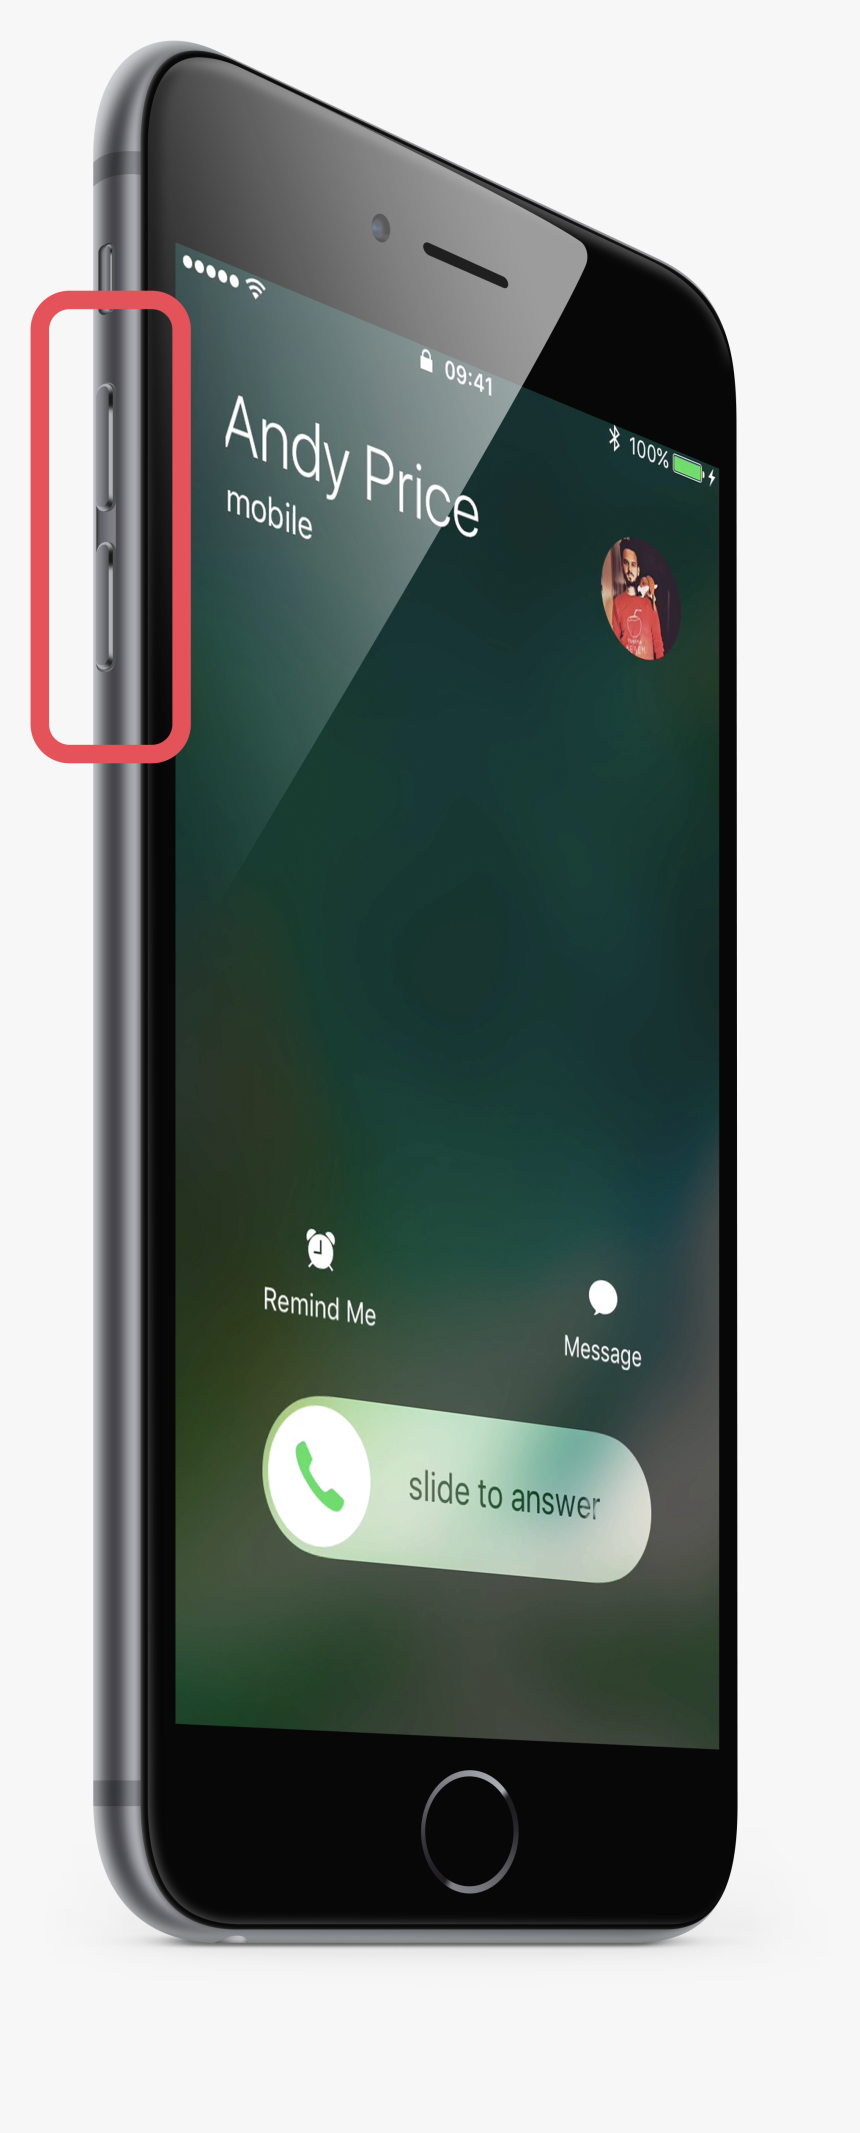 Mobile Phone Volume Button Png, Transparent Png, Free Download